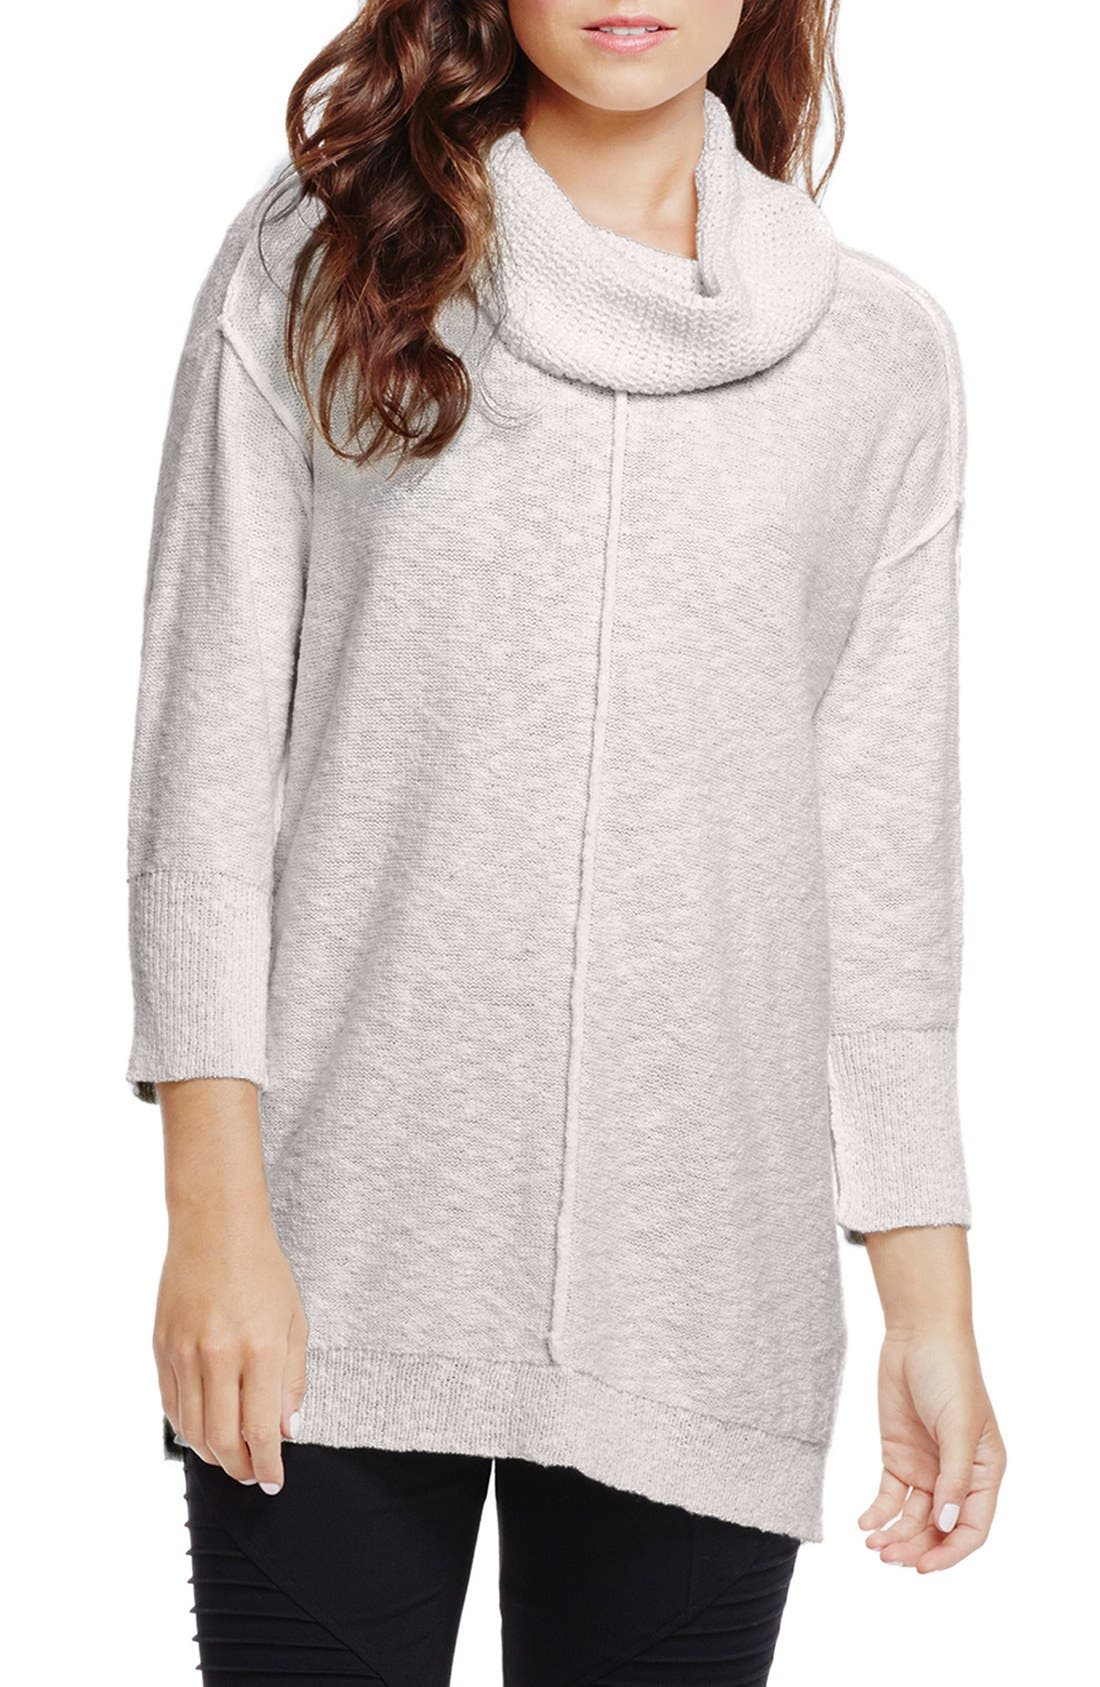 Main Image - Two by Vince Camuto Exposed Seam Cowl Neck Pullover